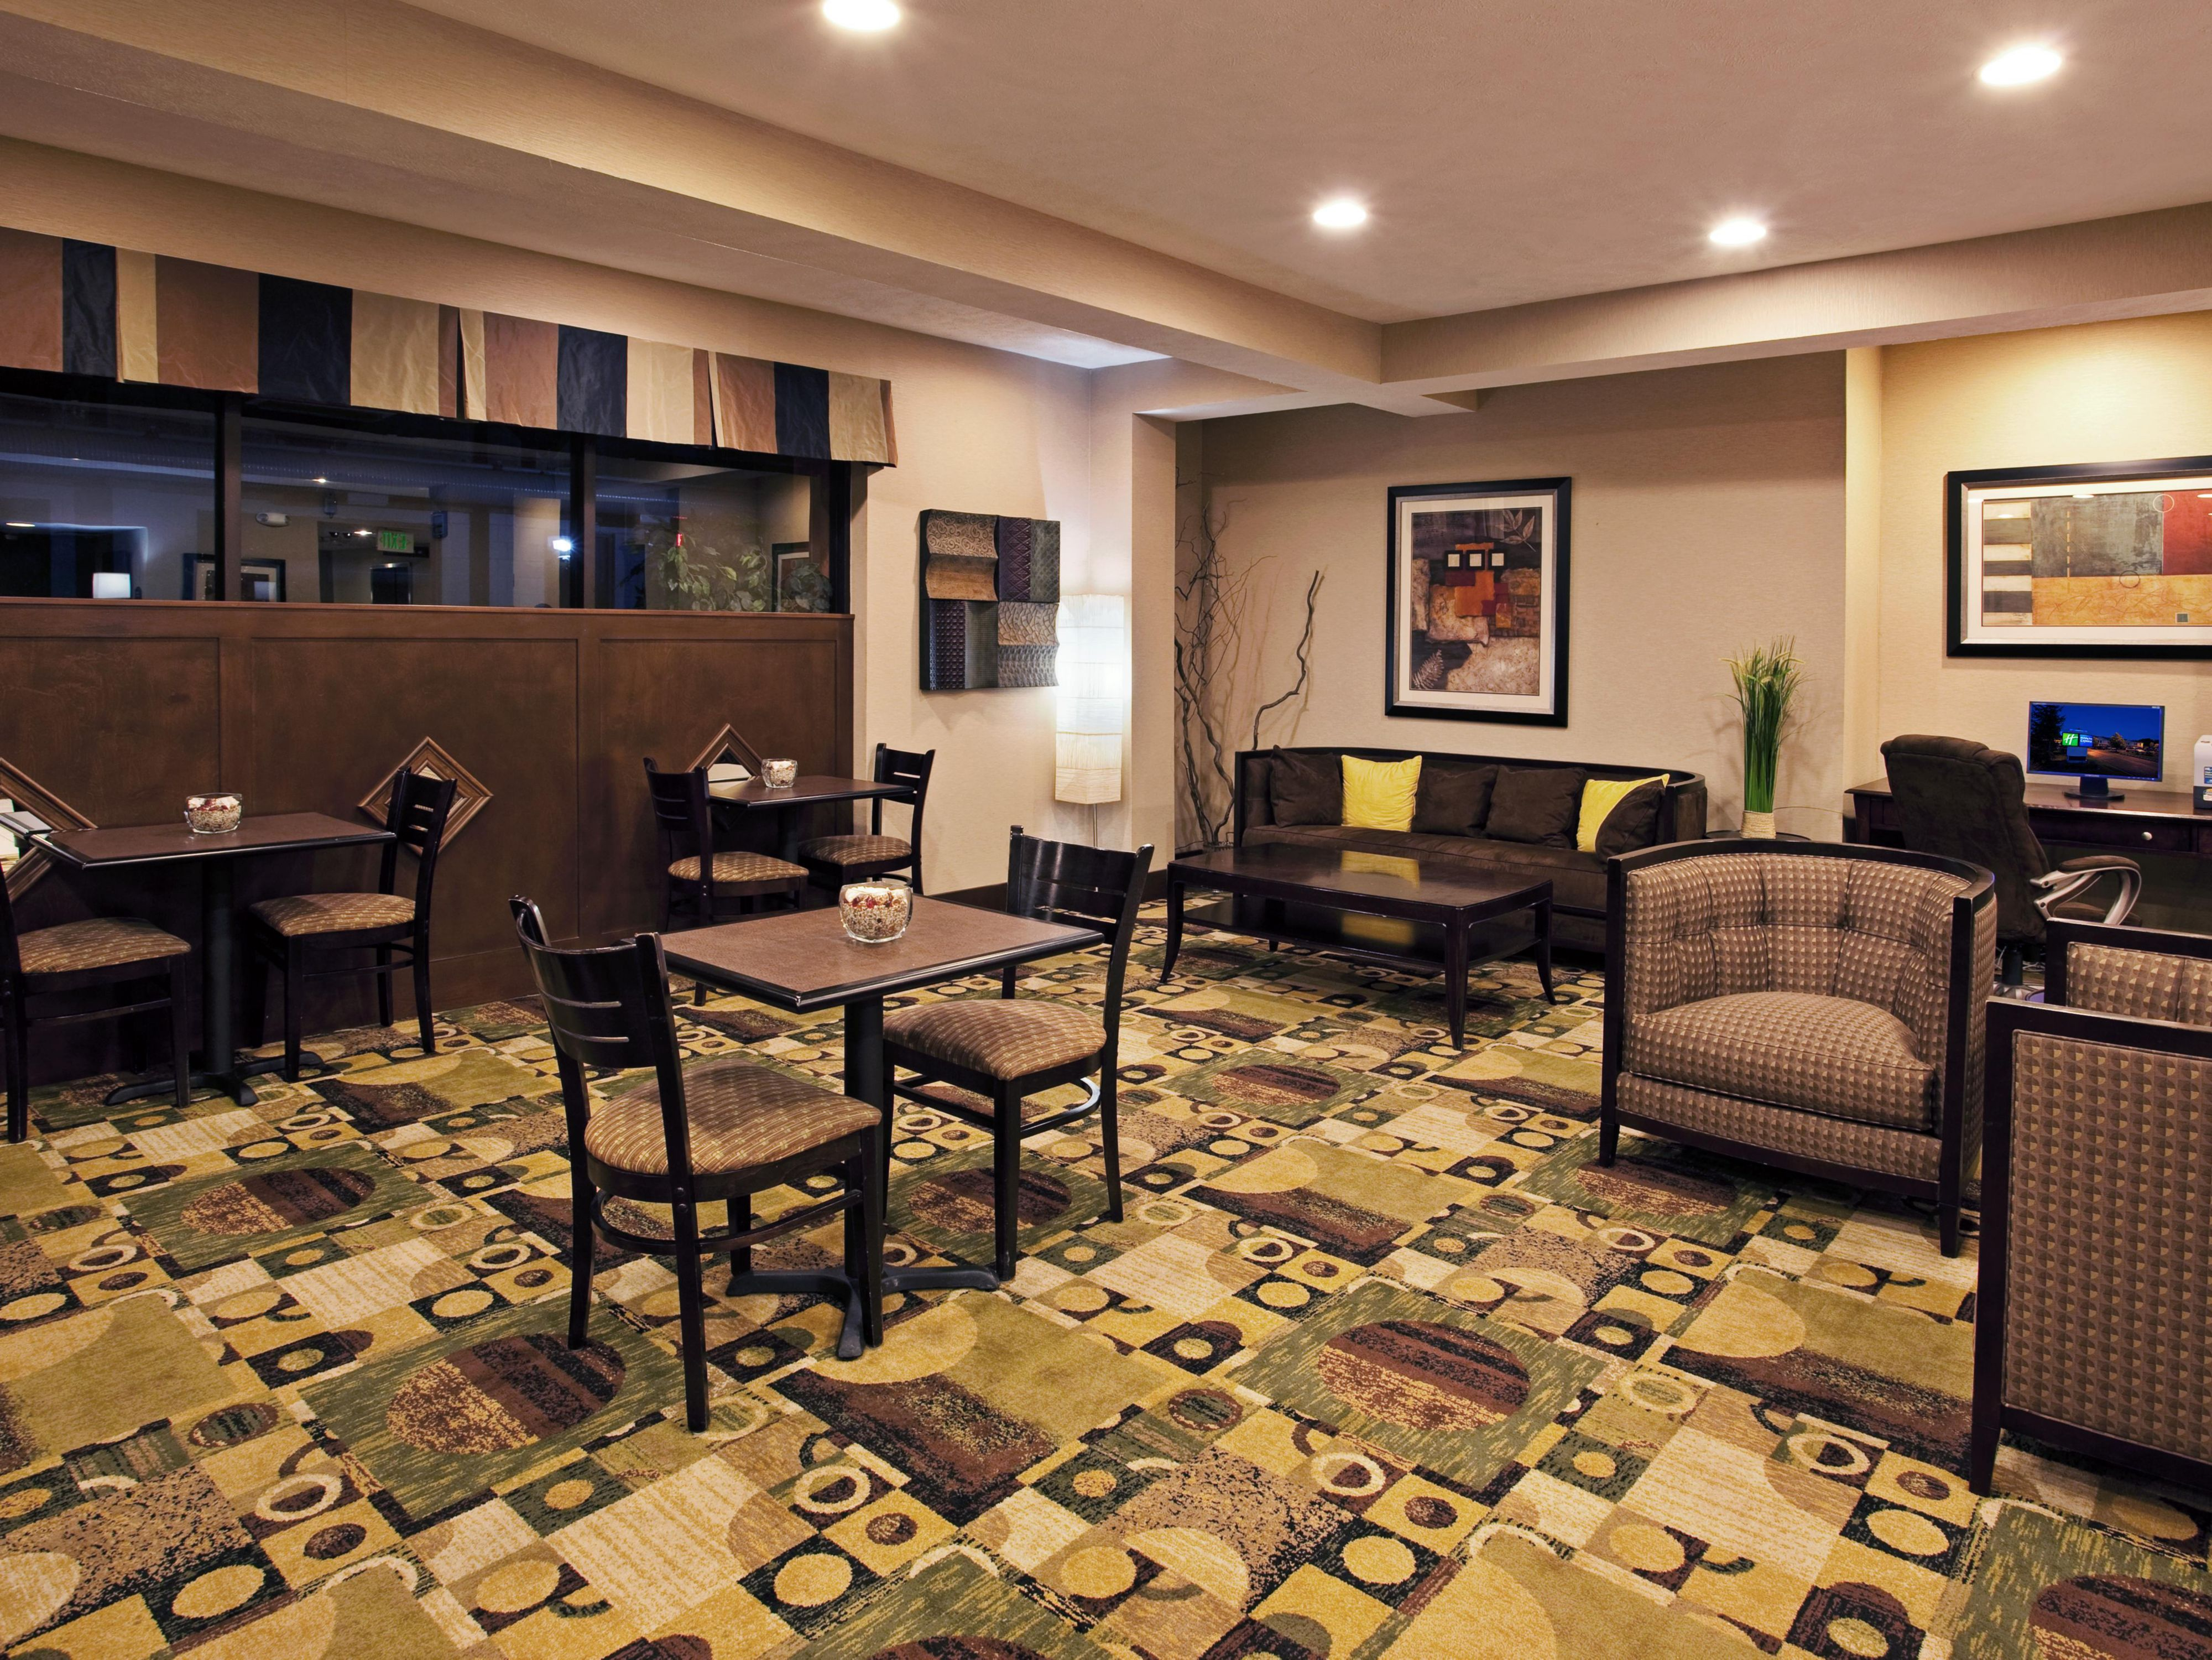 Unwind and watch some TV in our spacious lobby